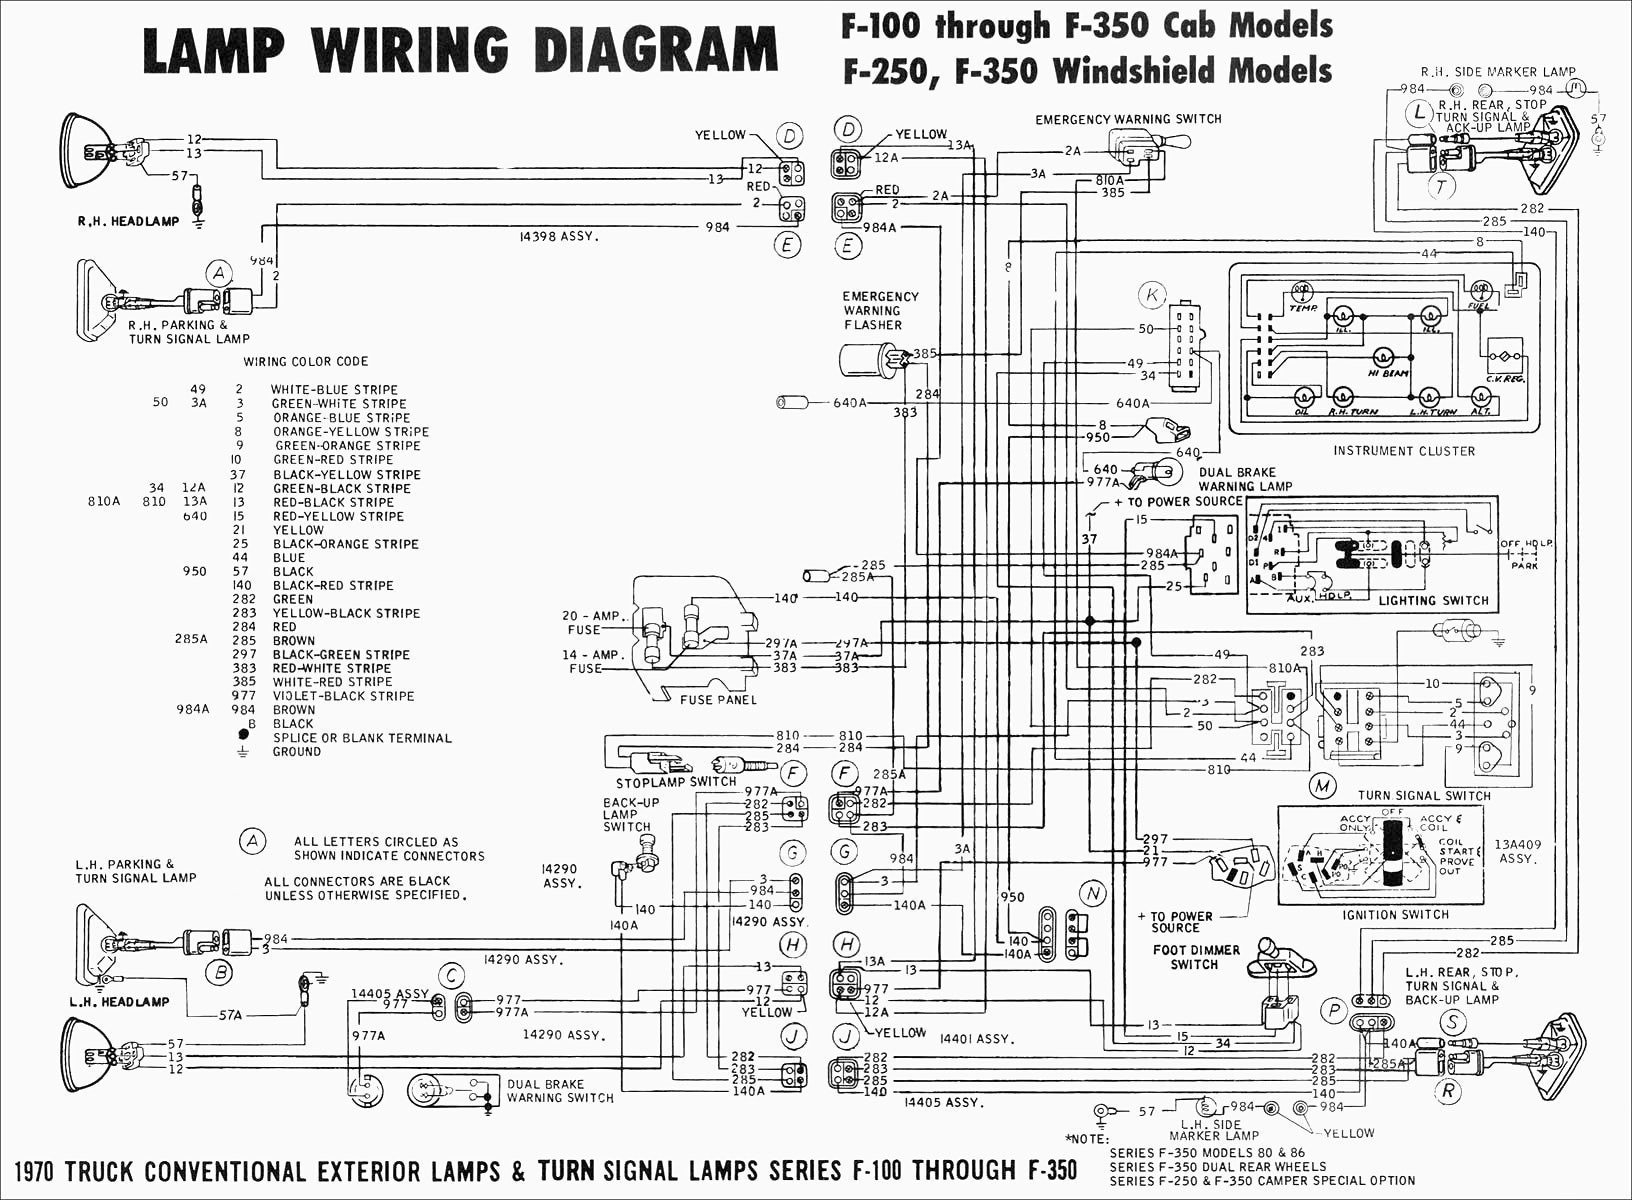 Free Wiring Diagrams Weebly 4efte ecu pinout 4efe ... on headlight switch wiring diagram, 97 s10 ignition switch diagram, s10 electrical diagram, 88 s10 engine, 88 s10 air cleaner, 88 s10 suspension, chevrolet s10 engine diagram, 88 s10 fuel gauge, 88 s10 frame, 88 s10 seats, 88 s10 parts, 88 s10 radiator, 88 s10 wheels, 88 s10 air conditioning,